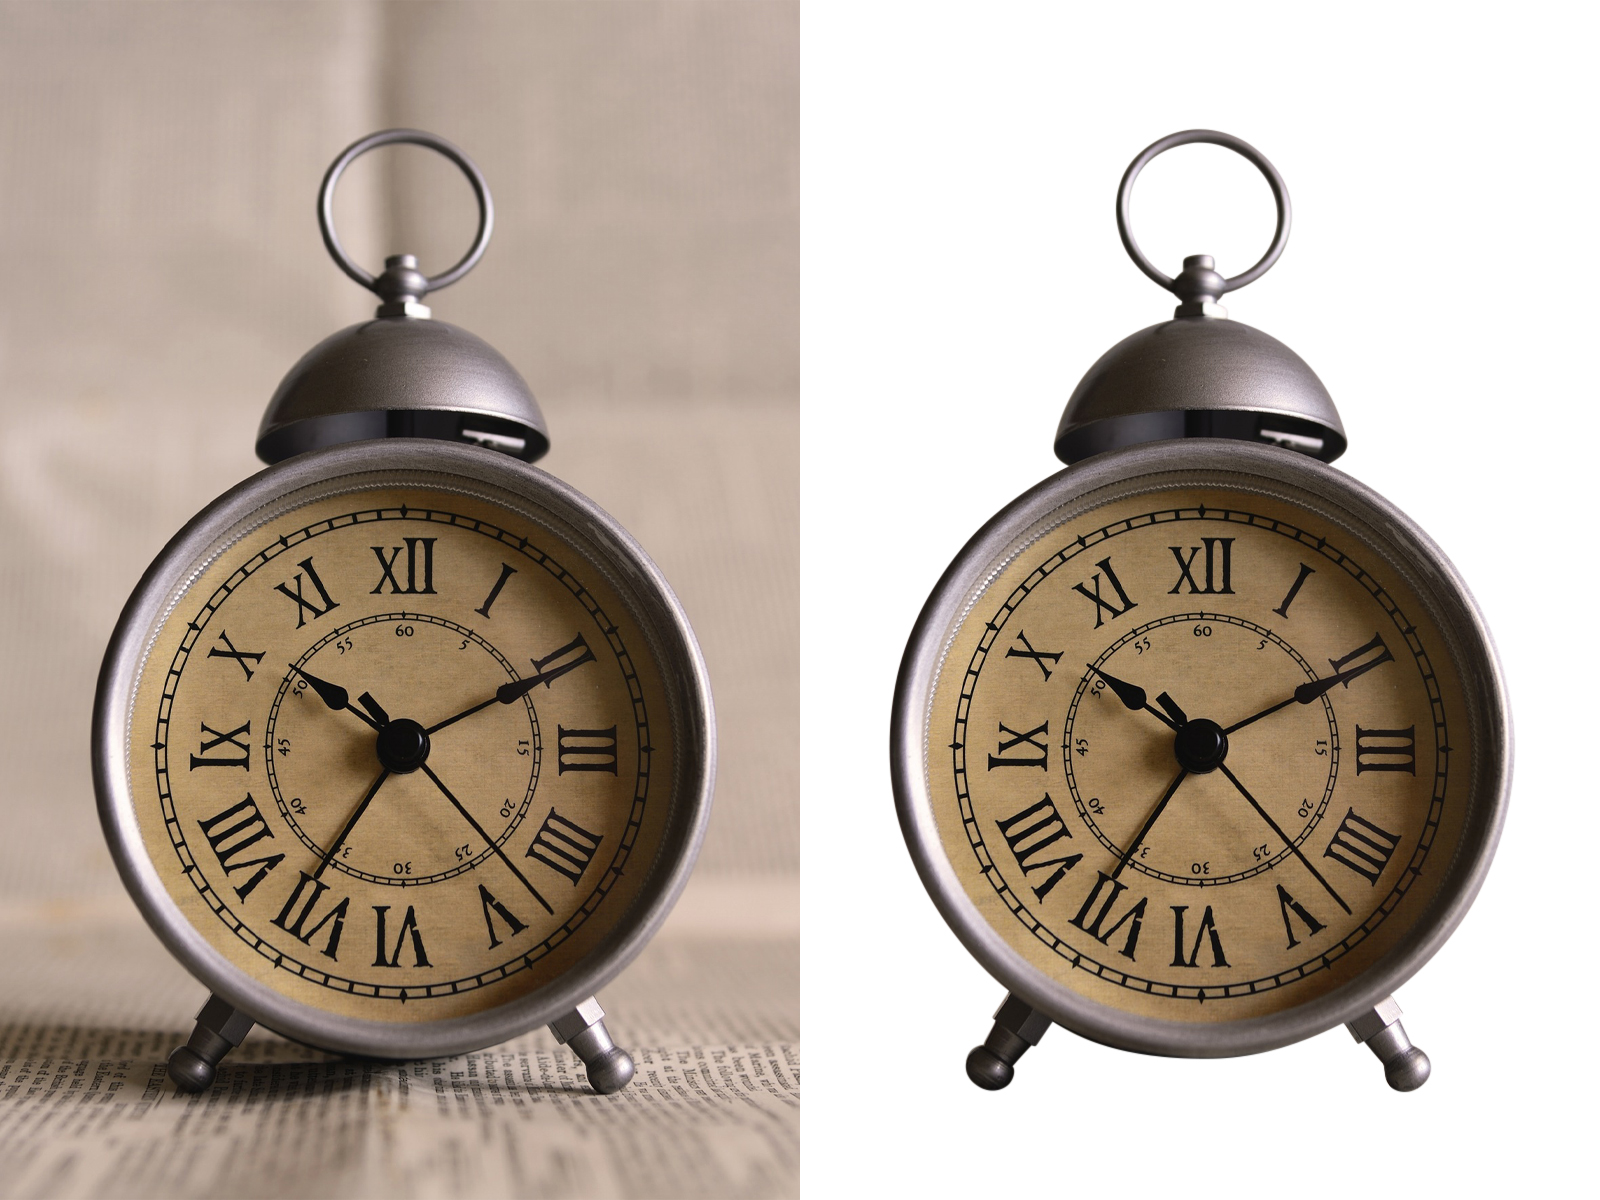 Clipping Path image by Alpha Clipping Path